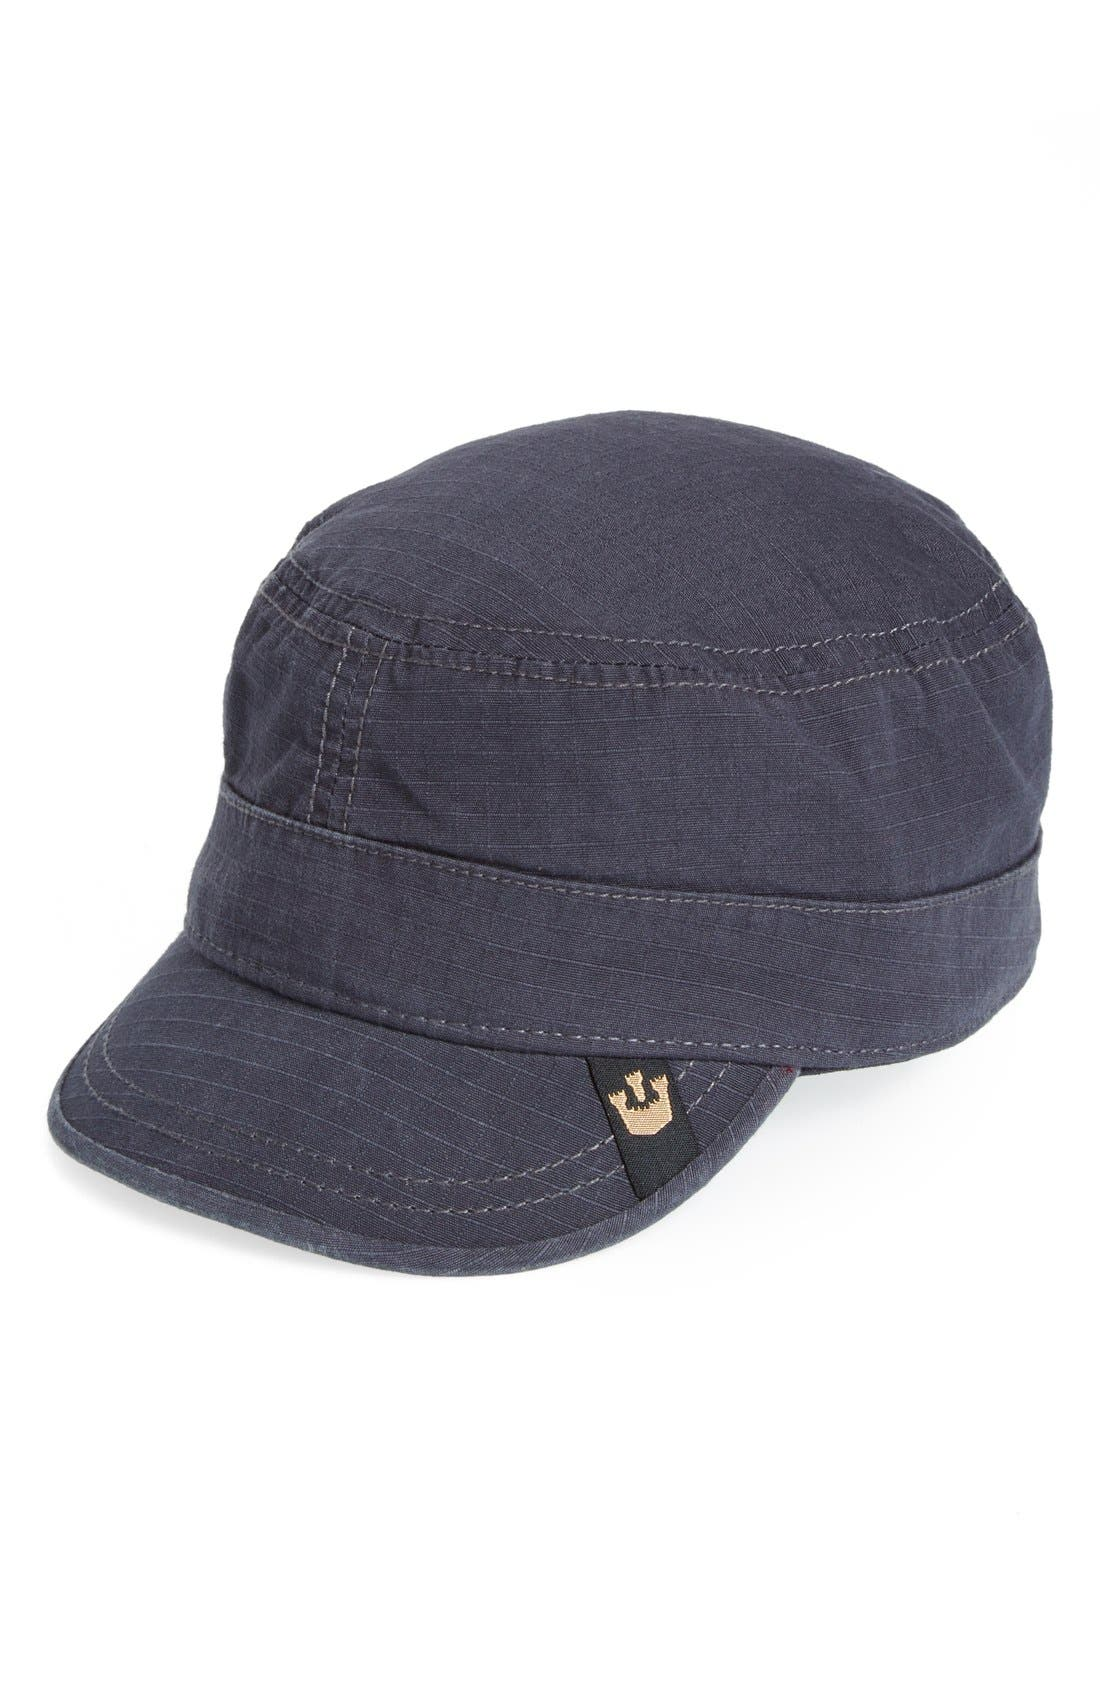 Main Image - Goorin Brothers Private Ripstop Cadet Cap